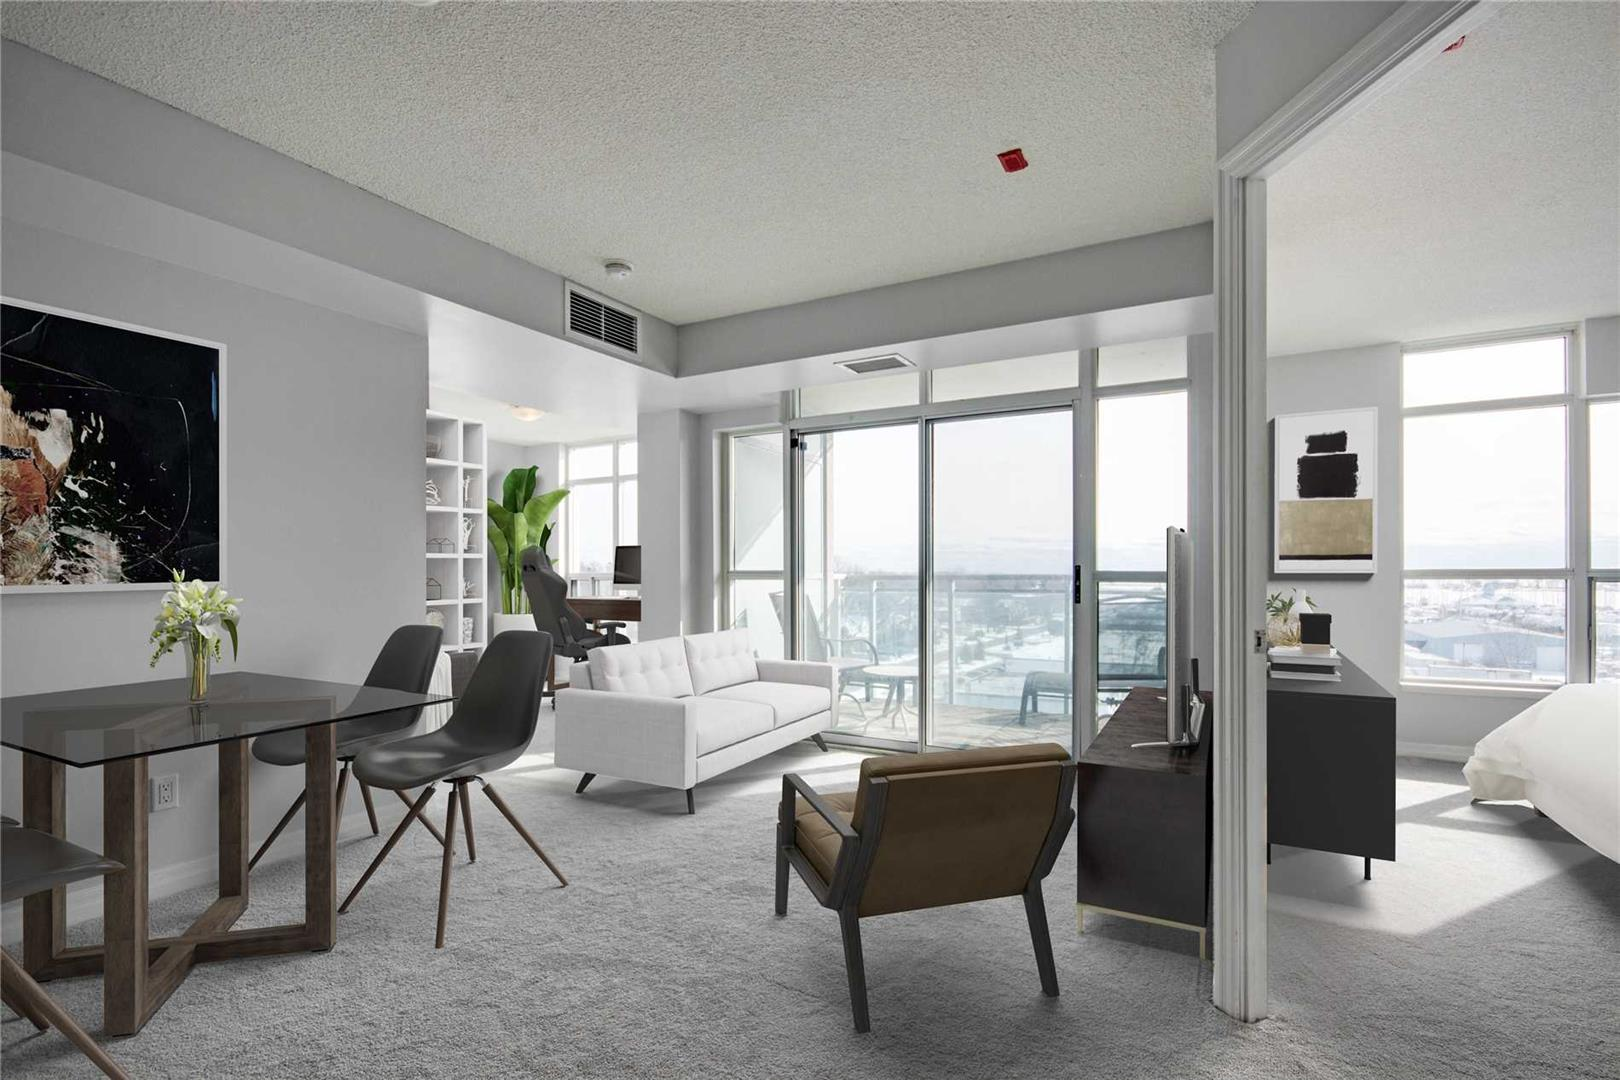 Fabulous 1+1 Bdrm Whitby Condo 'The Rowe' Just Steps to Lake Ontario & Transit